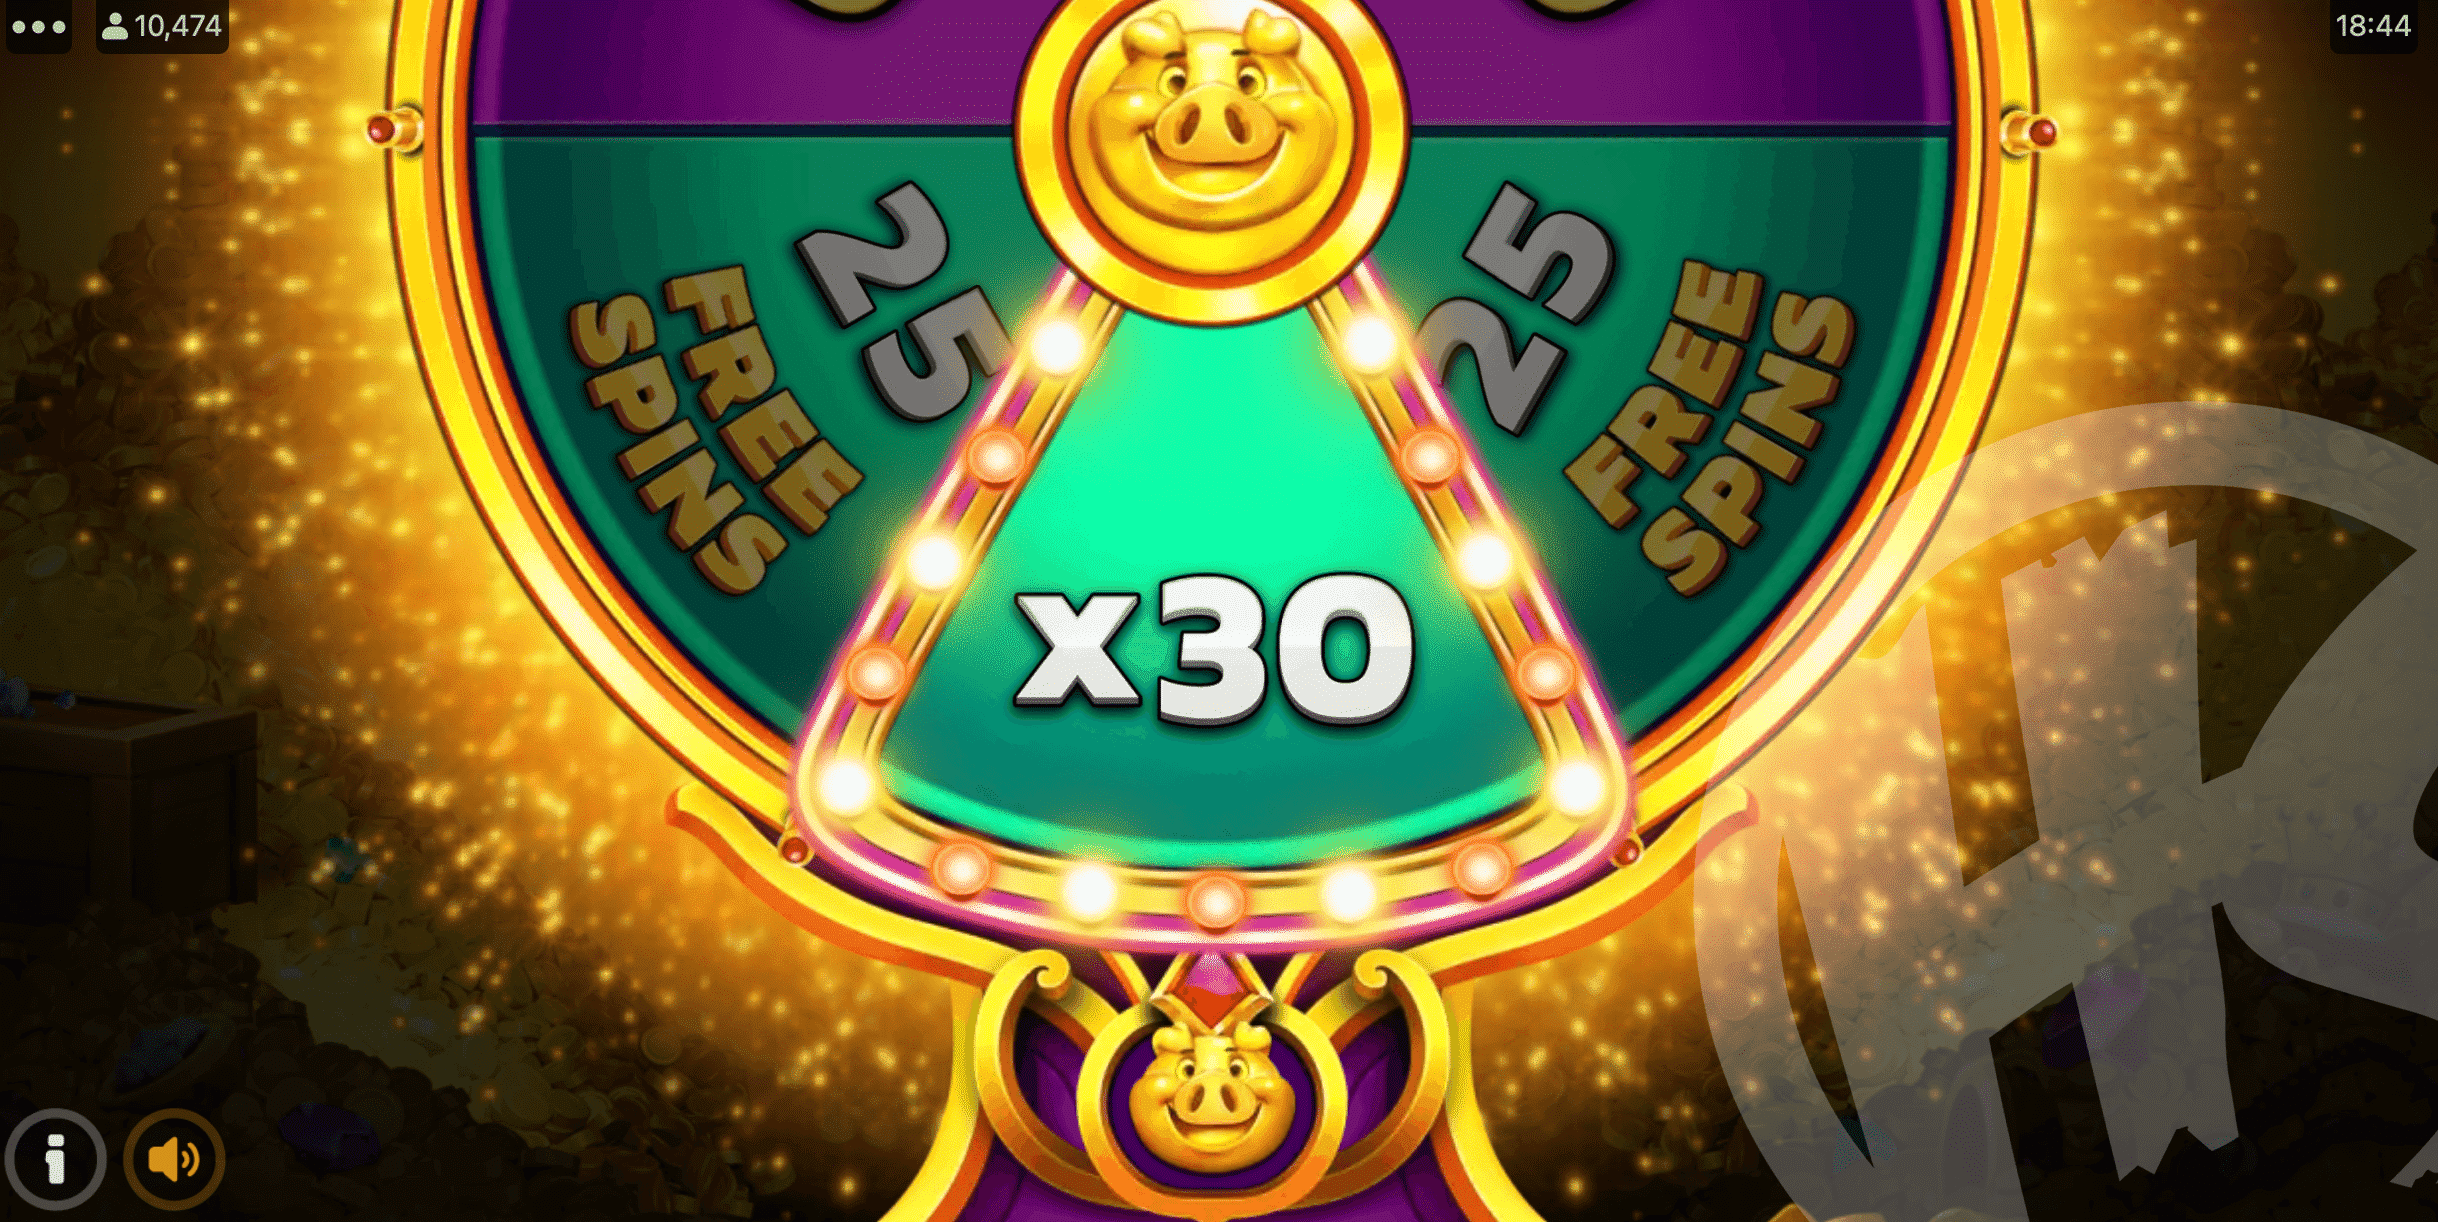 Gamble Up to 30 Free Spins, Revealing a Random 'x bet' Value if the Gamble Loses